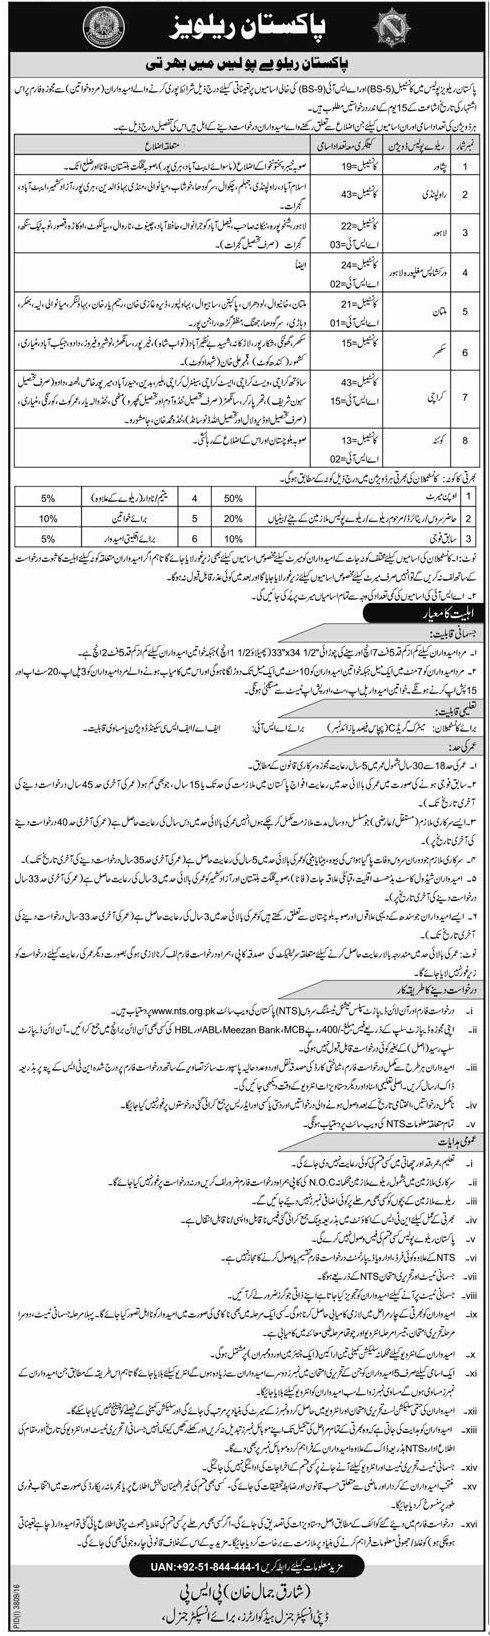 Job Title Pakistan Railway Police Jobs 2017 For Constable and ASI Job Description You can find here latest Pakistan Railway Police Jobs 2017 For Constable and ASI. Applications are invited for Pakistan Railway Police from educatedand experienced candidates. Vacant Posts (i).Constable – BPS-05 [Peshawar – Posts=19] (ii).Constable – BPS-05 [Rawalpindi – Posts=43] (iii).Constable – BPS-05 …